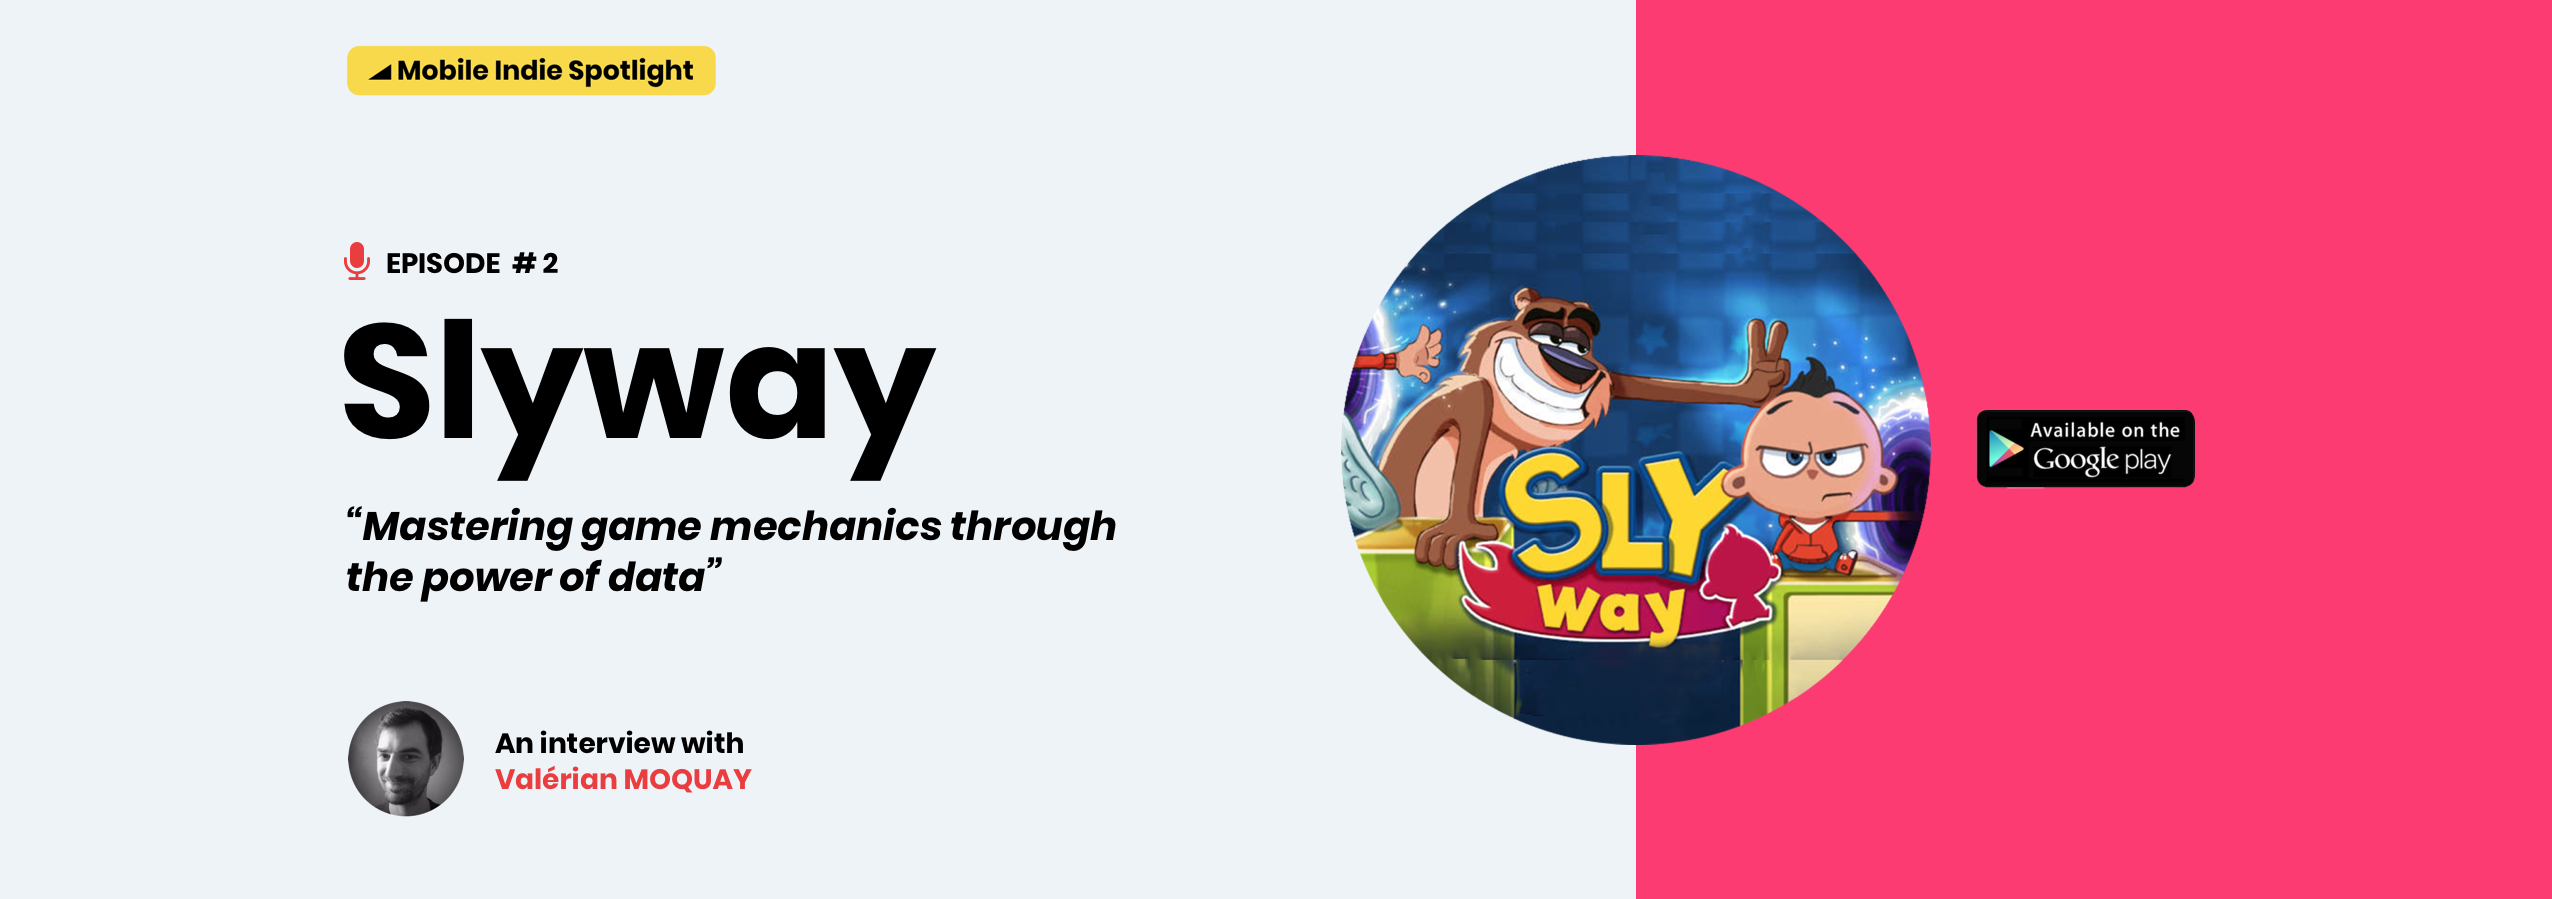 Mobile Indie Spotlight Episode #2 : Slyway